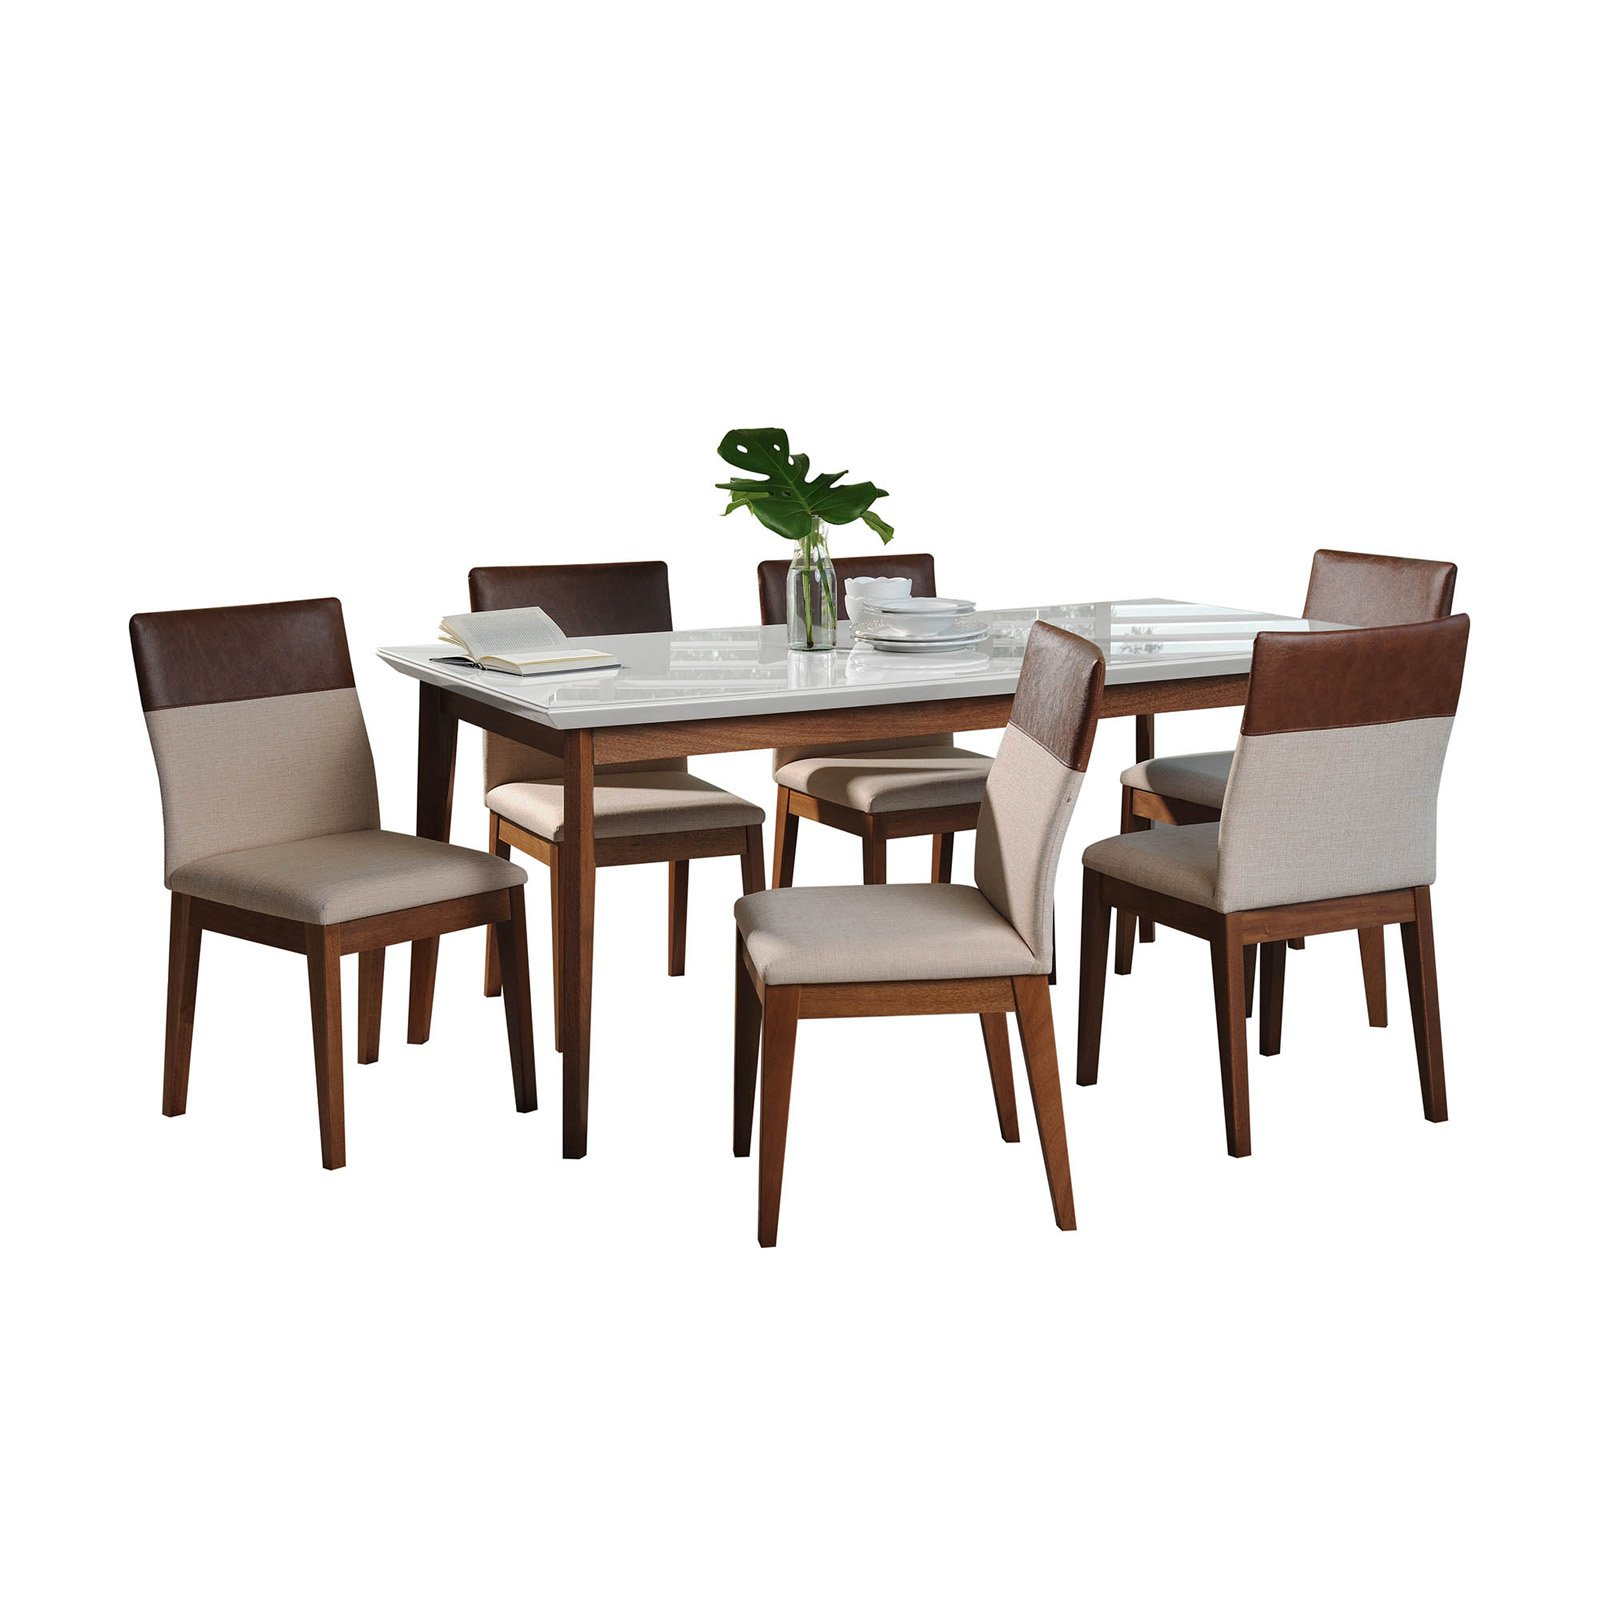 Manhattan Comfort Lillian and Duke 7 Piece Dining Table Set